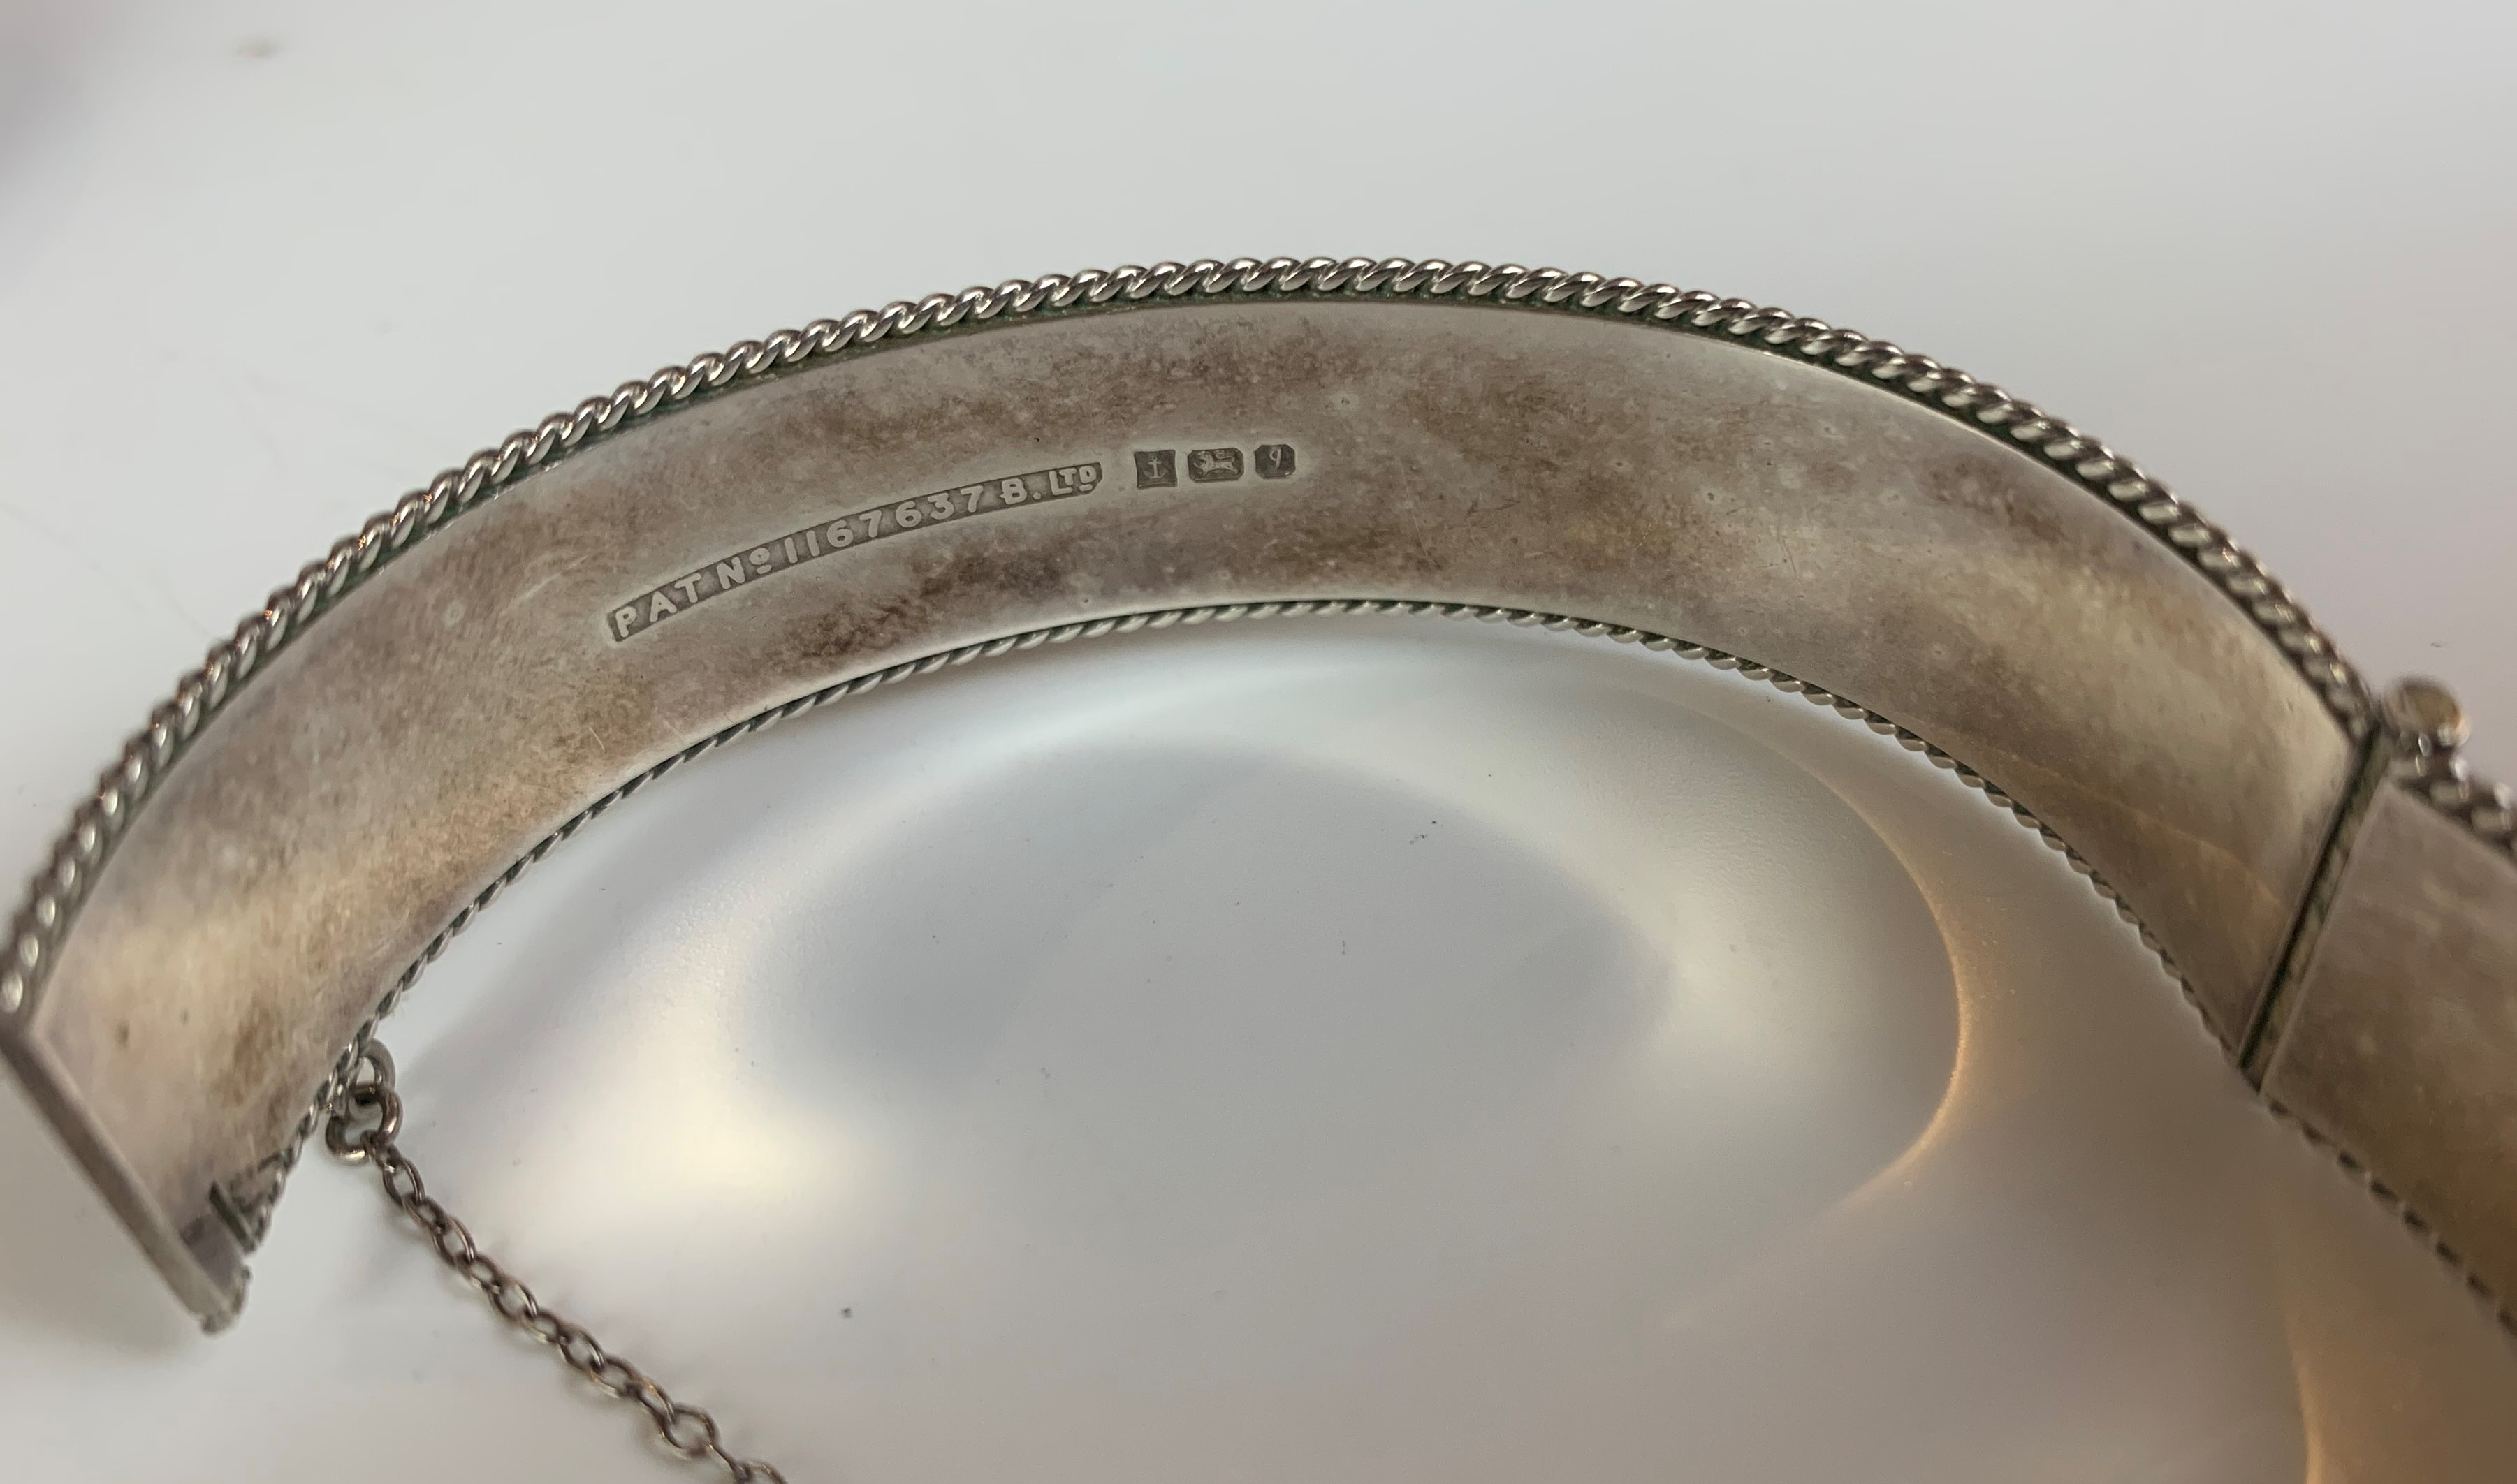 2 silver engraved bangles, total w: 1.5 ozt - Image 5 of 7